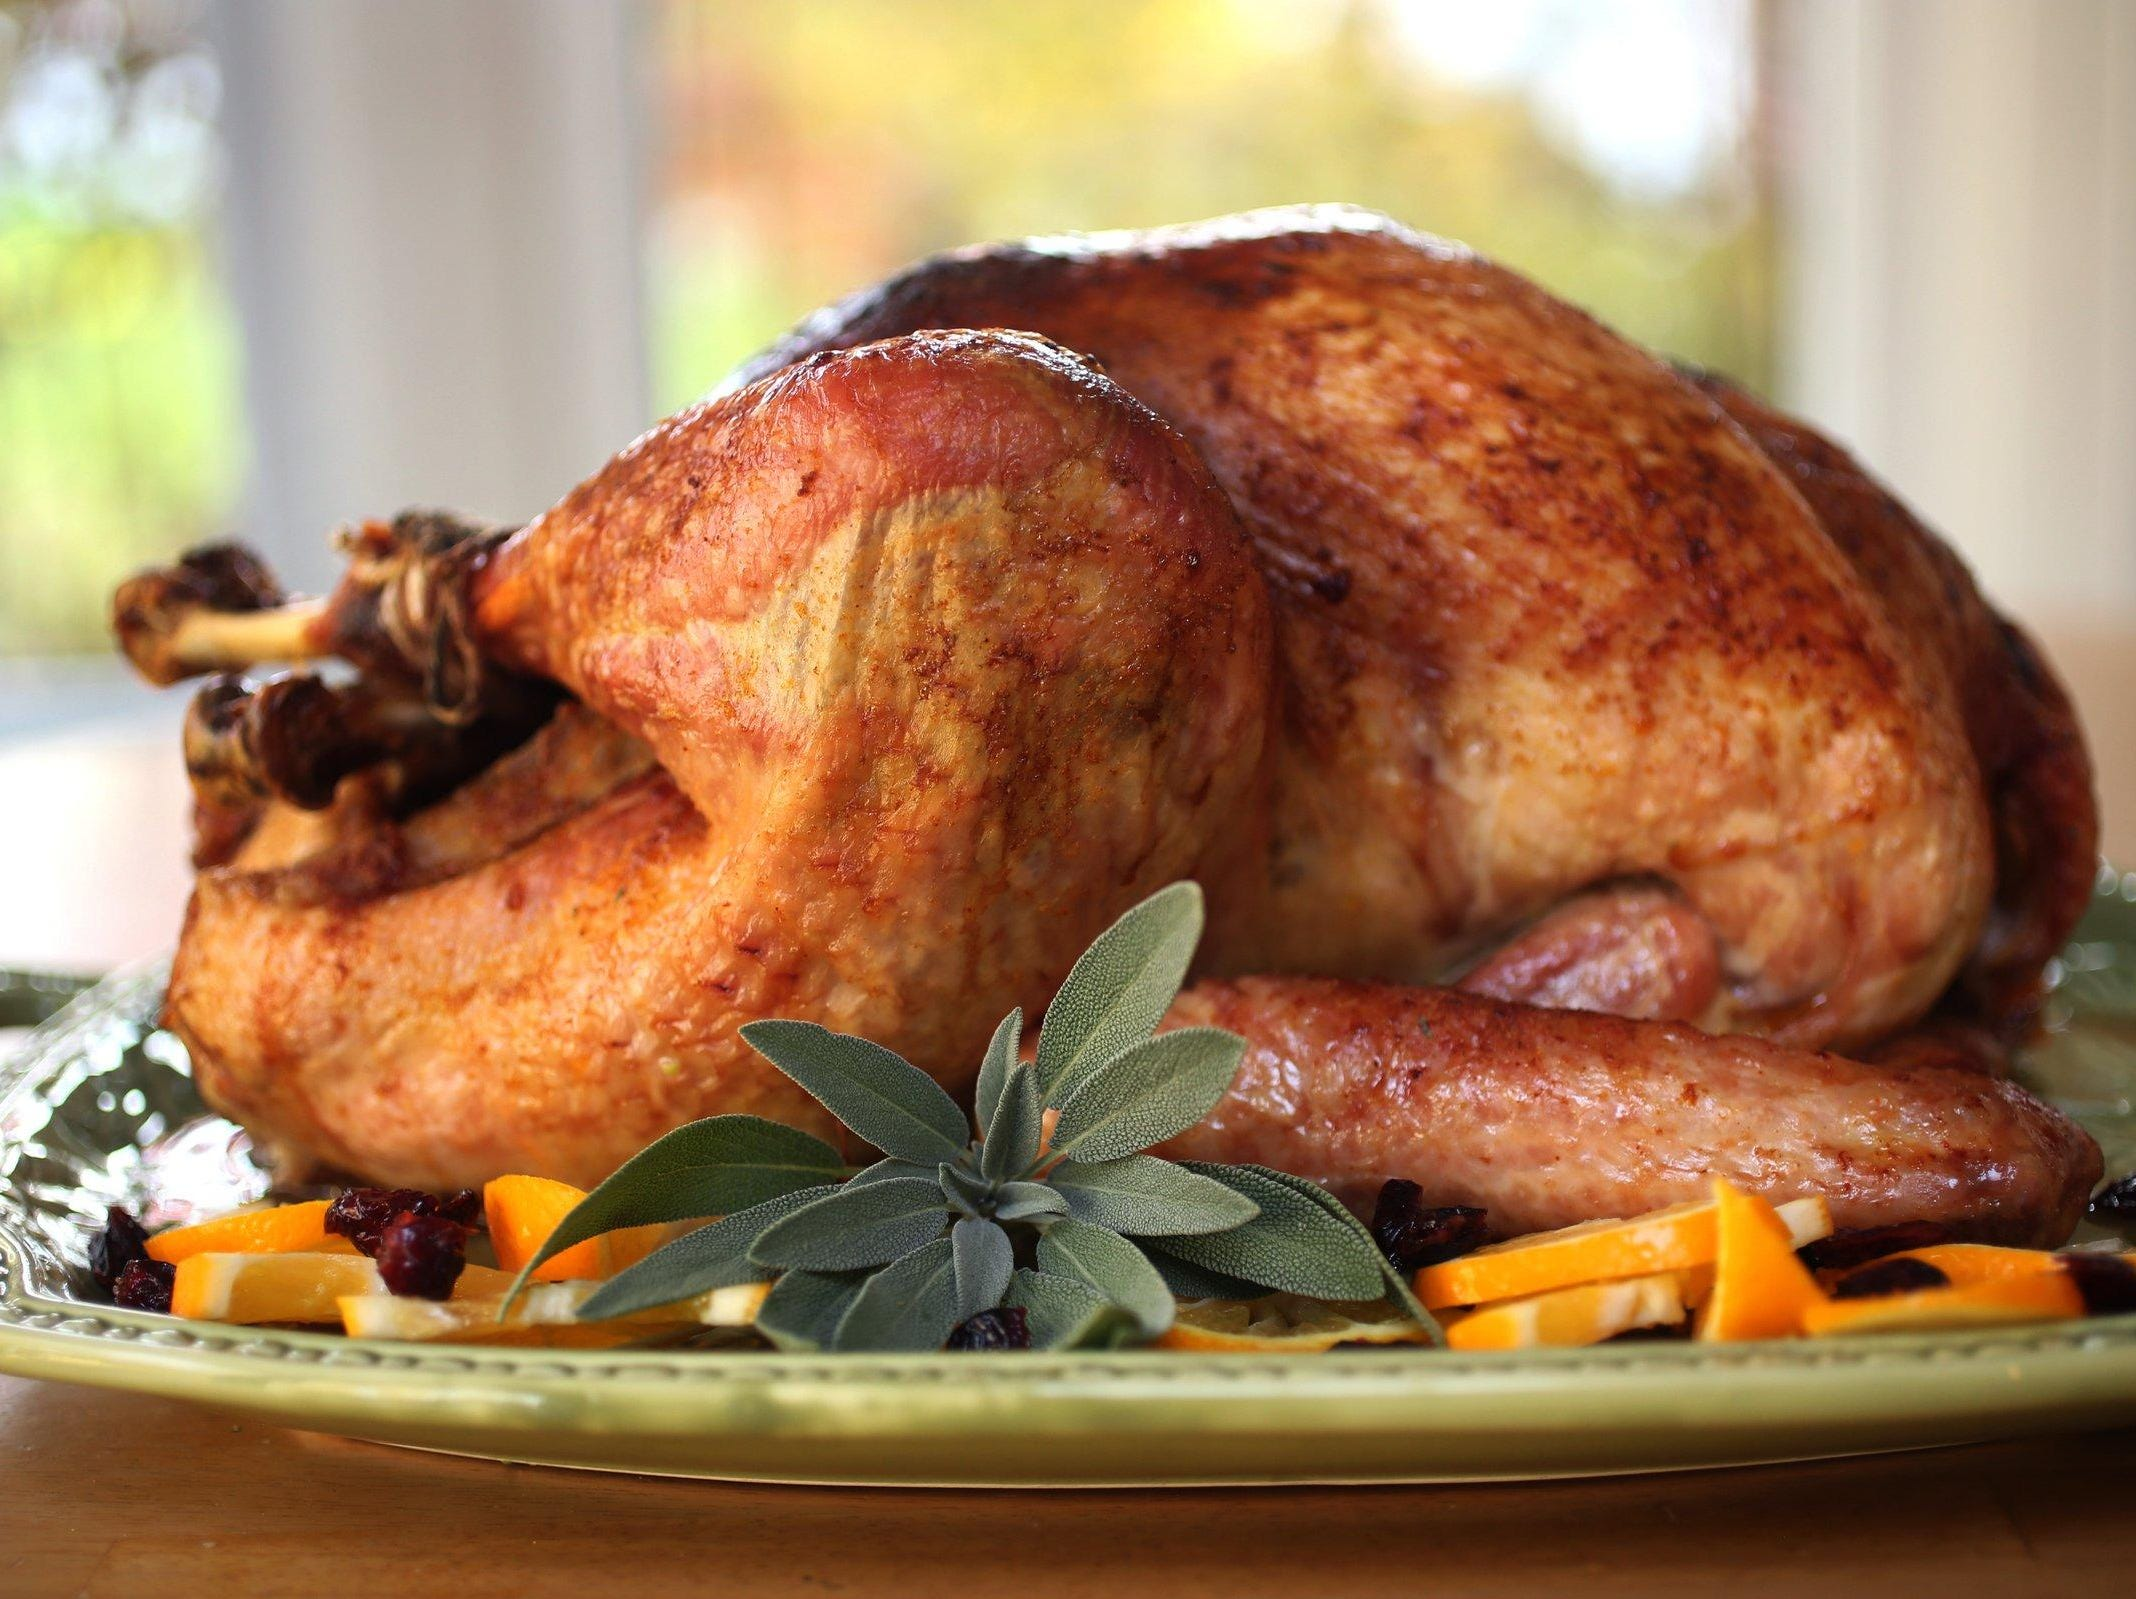 This sweet and spicy whole turkey recipe is kicked up a few notches thanks to the ginger and cayenne pepper. It's all balanced with a bit of sweetness from the brown sugar and honey glaze.